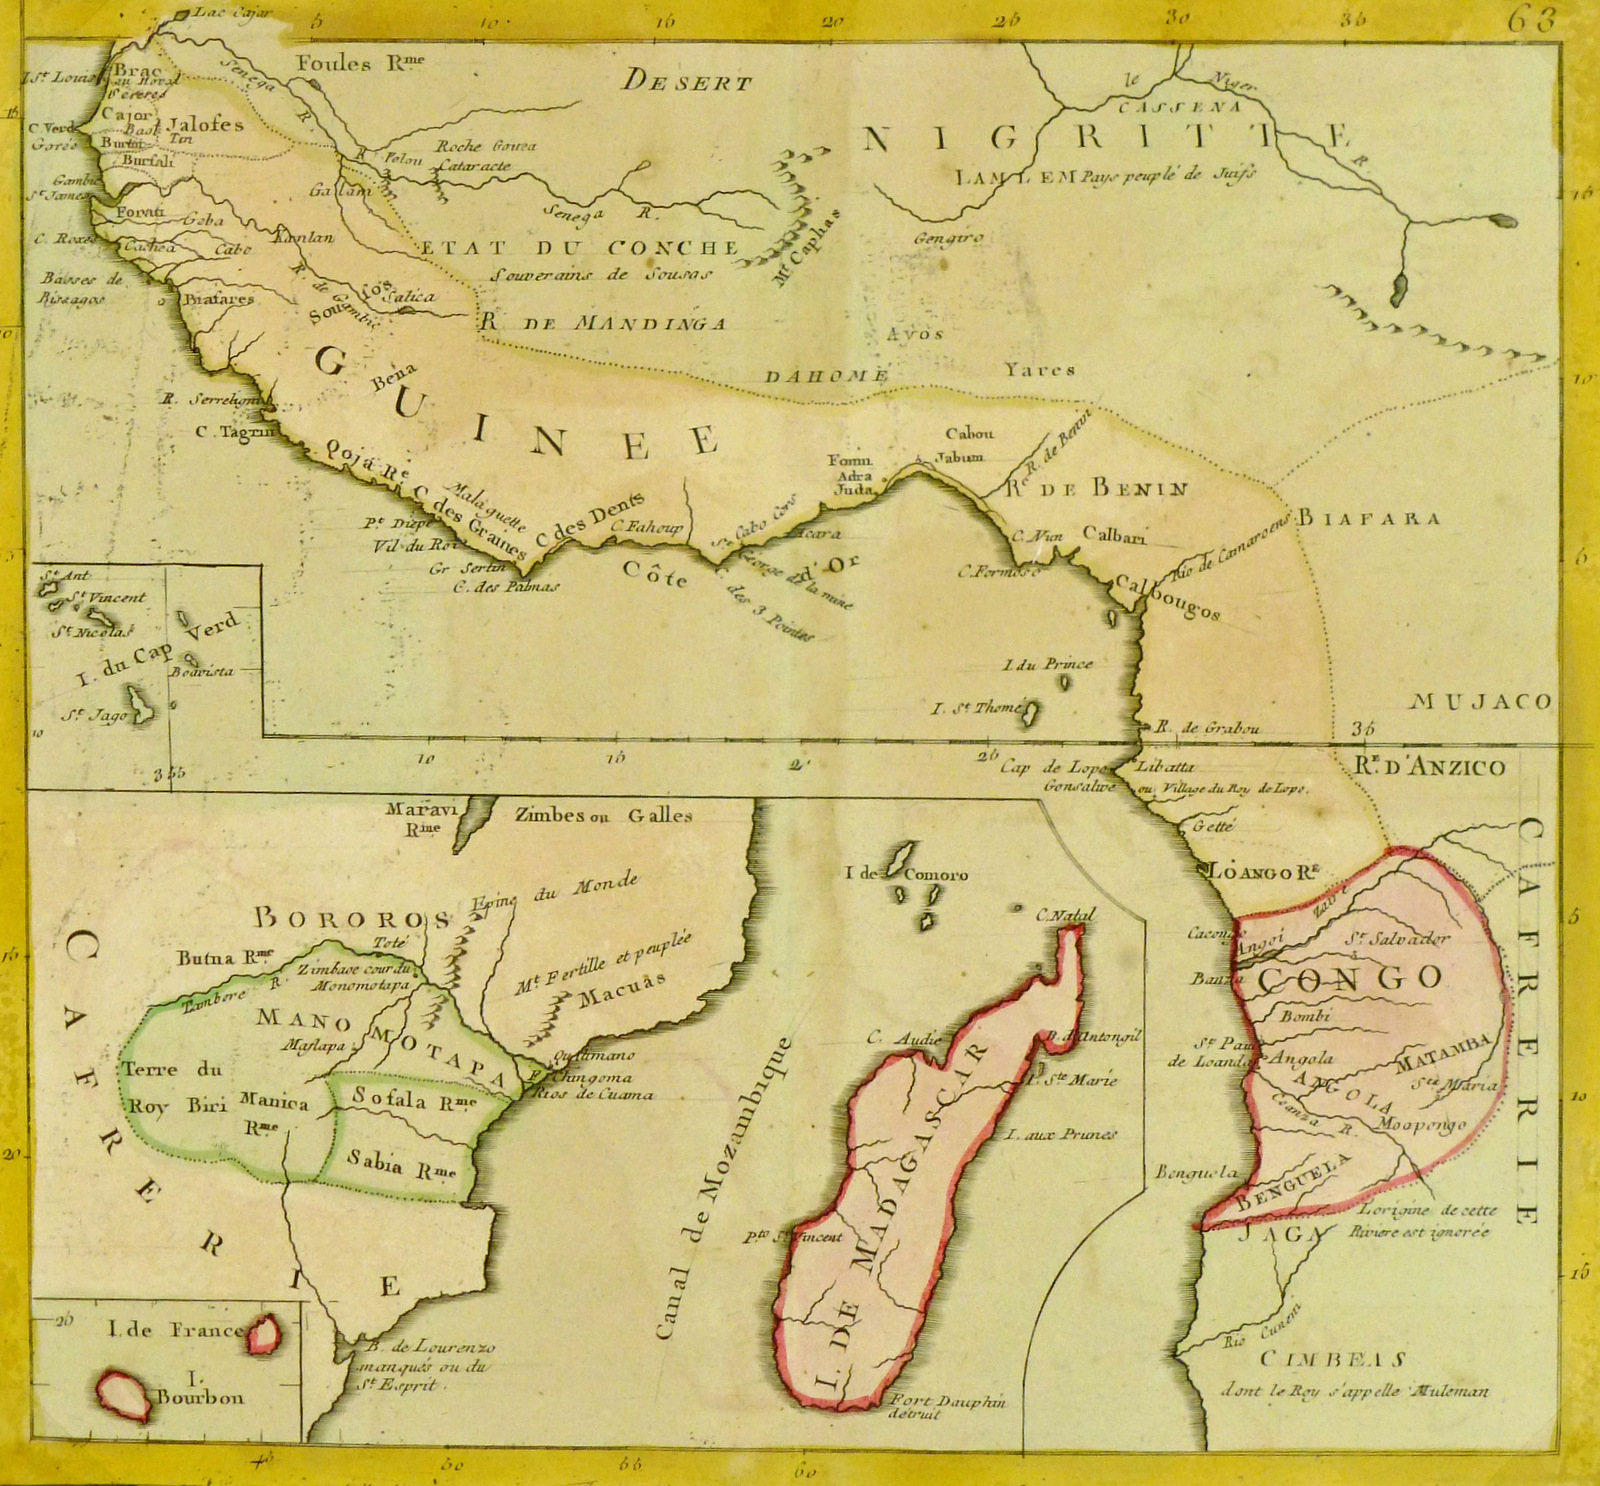 Map - Africa, 1767 Kingdom Of Madagascar Map on map of kalahari desert, map of senegal, map of thiland, map of nicaragua, map of cambodia, map of taiwan, map of sahara desert, map of bulgaria, map of north korea, map of ukraine, map of mali, map of usa, map of french polynesia, map of baffin island, map of south africa, map of antarctica, map of mexico, map of namib desert, map of new zealand, map of iran,